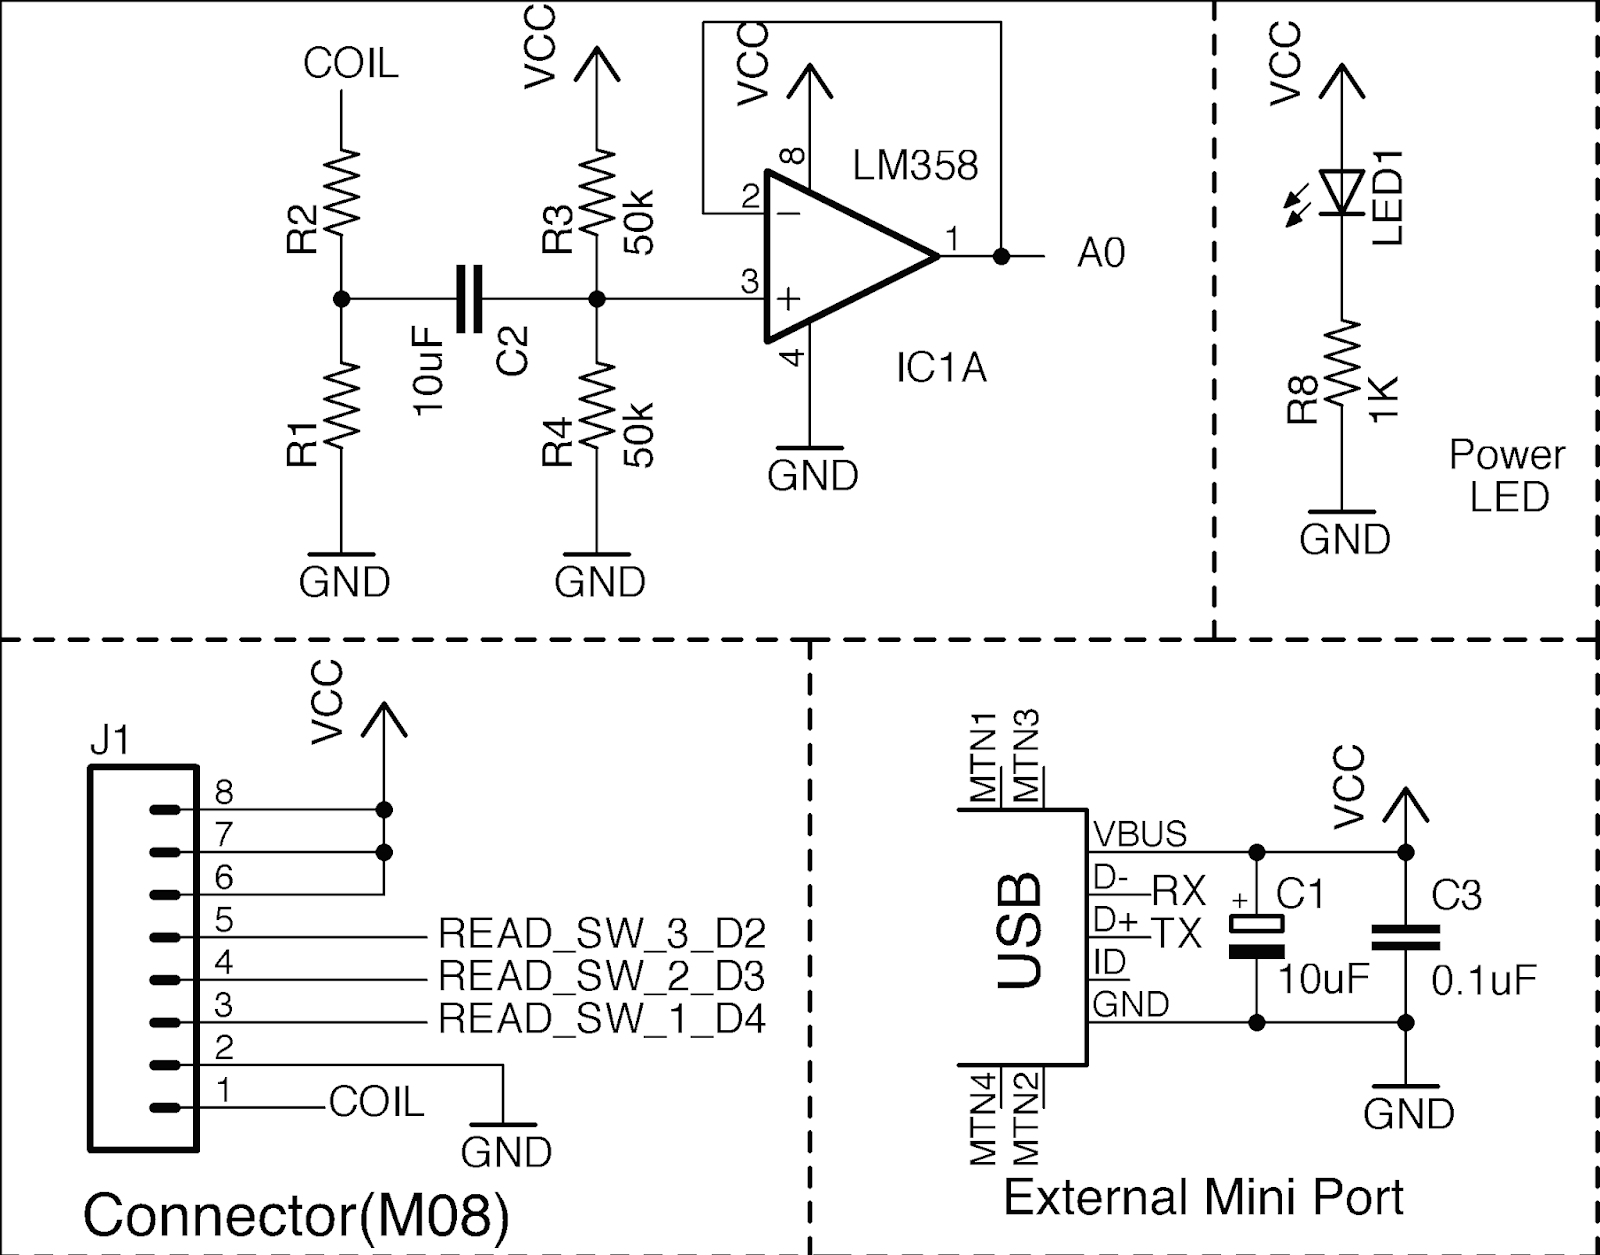 Embedded Systems Circuits 8085 Projects Blog Archive Analog Oscilloscope Circuit Better Schematic